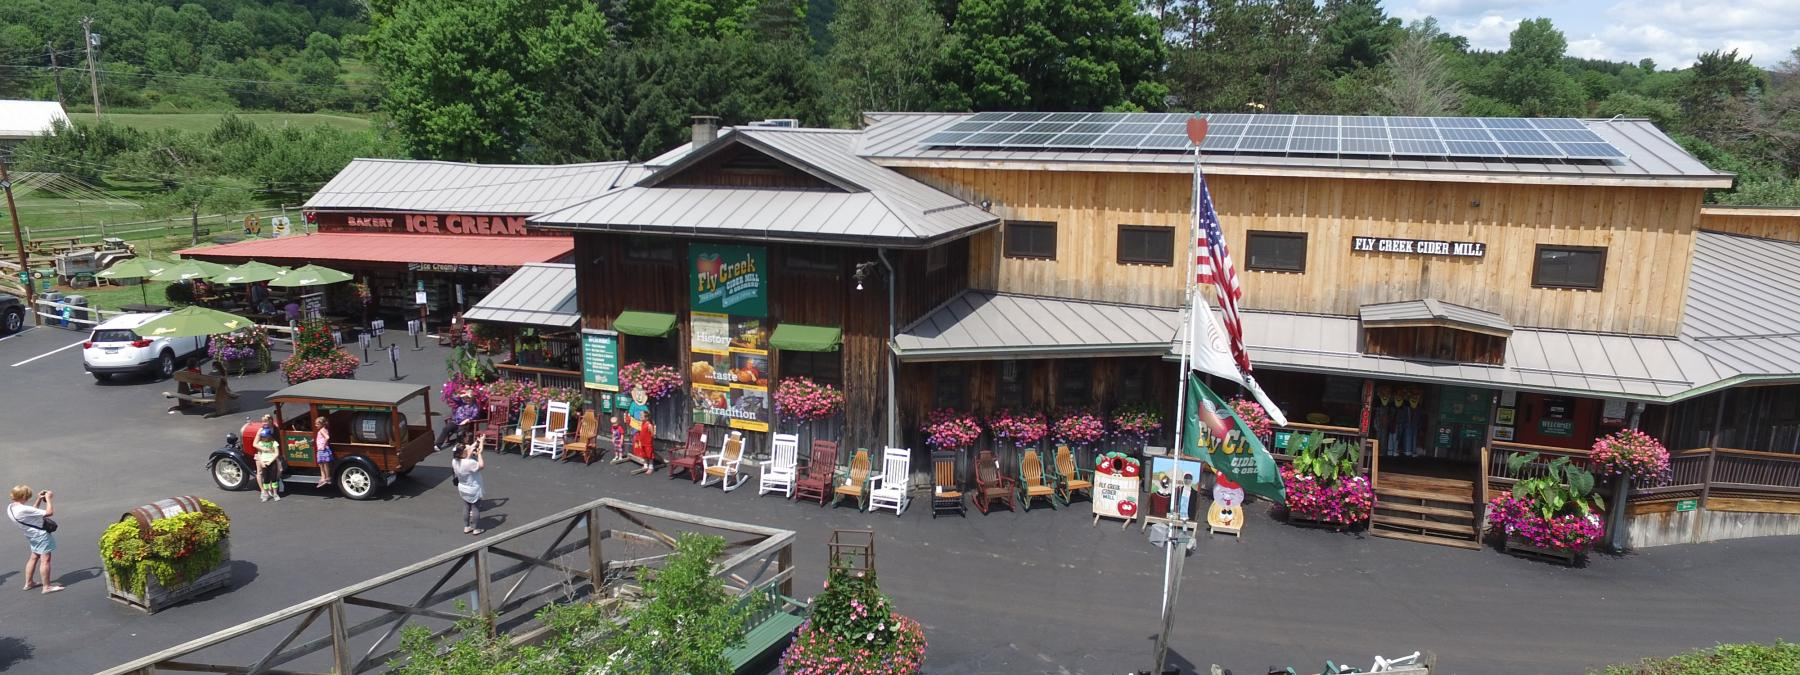 Today's Fly Creek Cider Mill